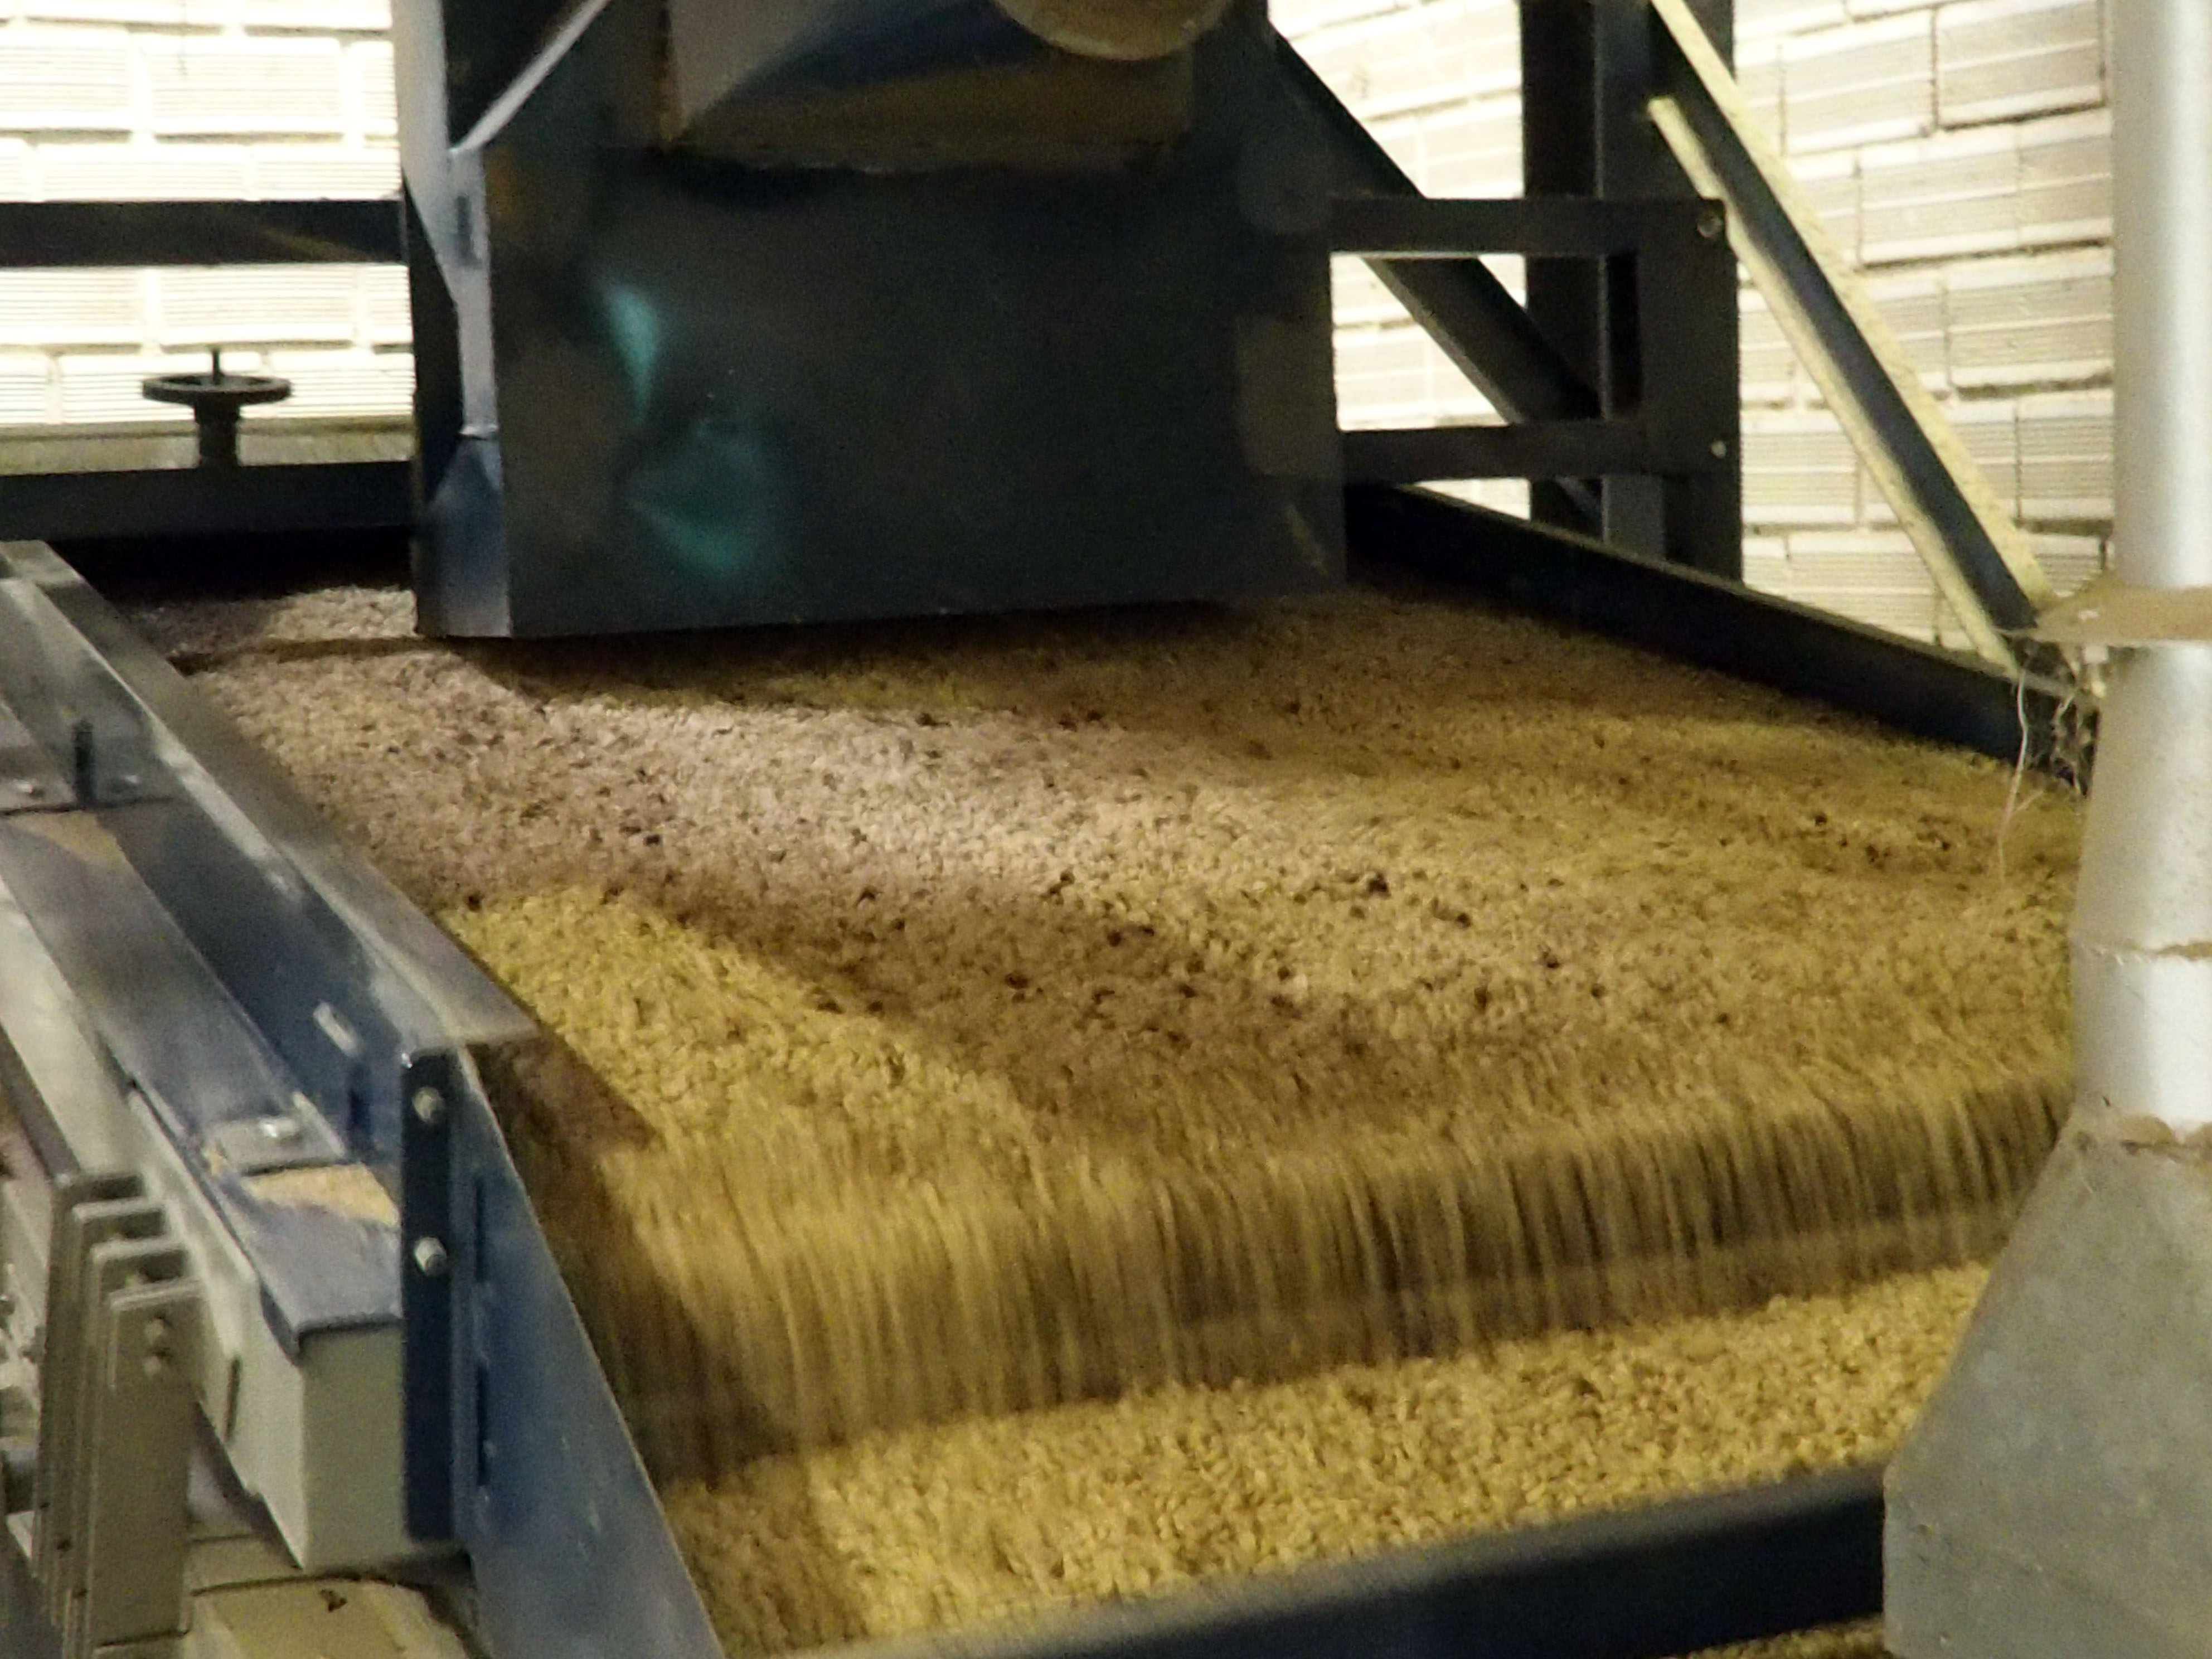 Processing coffee beans